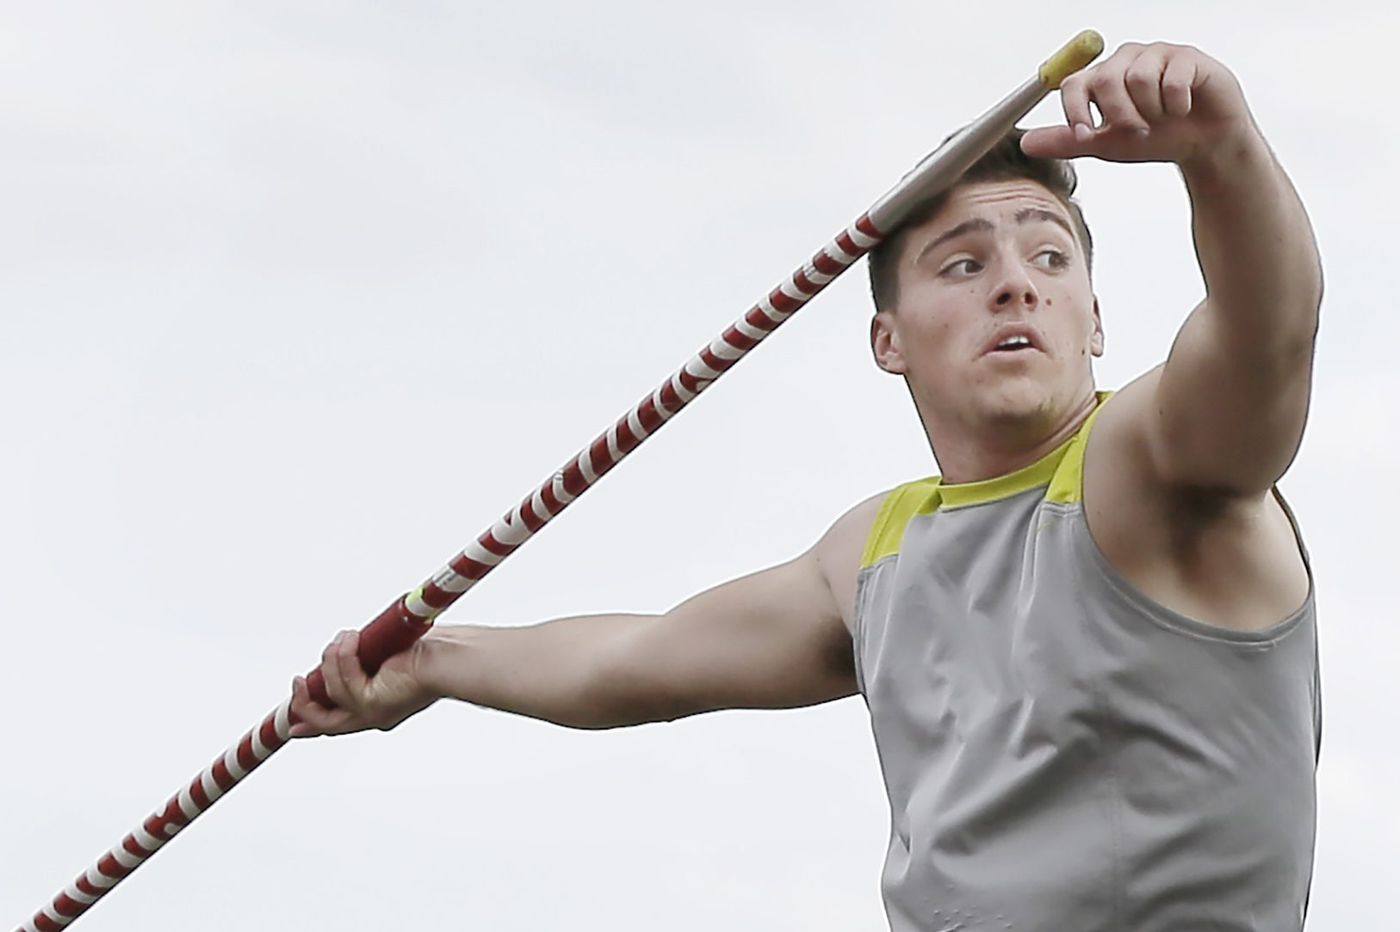 Rancocas Valley javelin star Nick Mirabelli is ready for Saturday's Meet of Champions